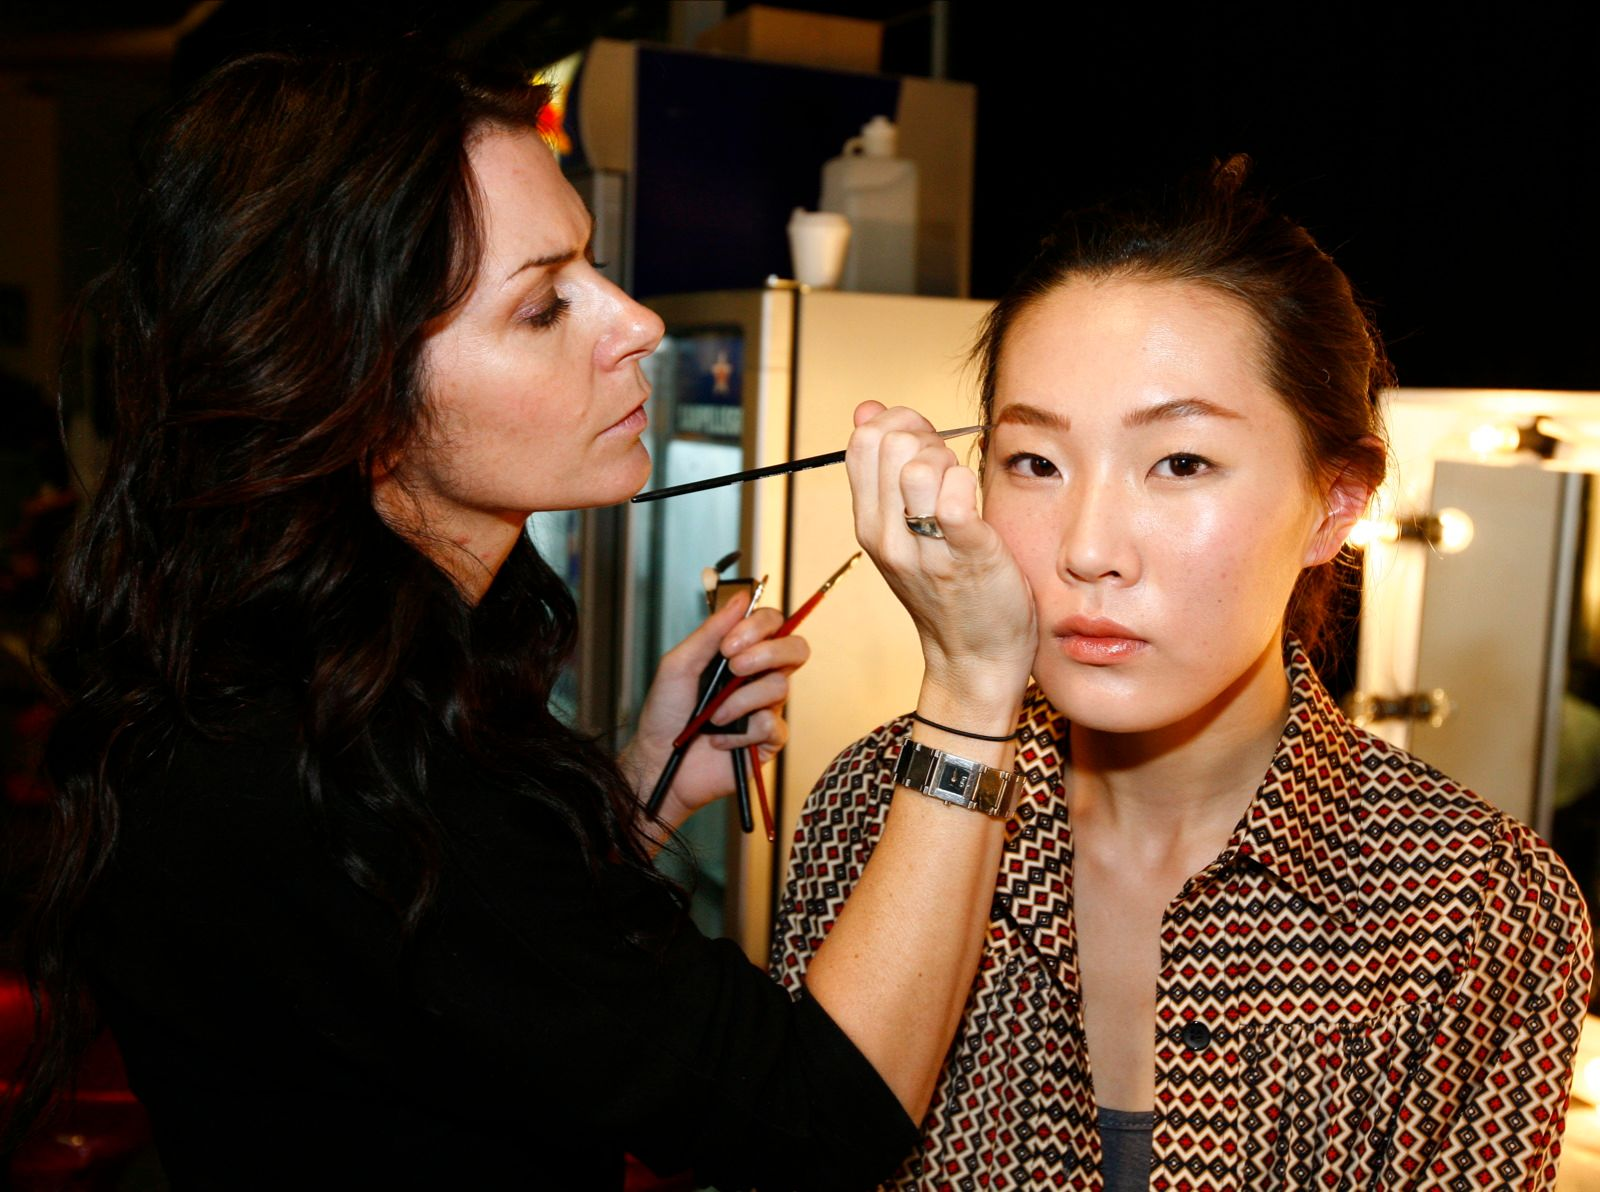 Confessions Of The Makeup Artist